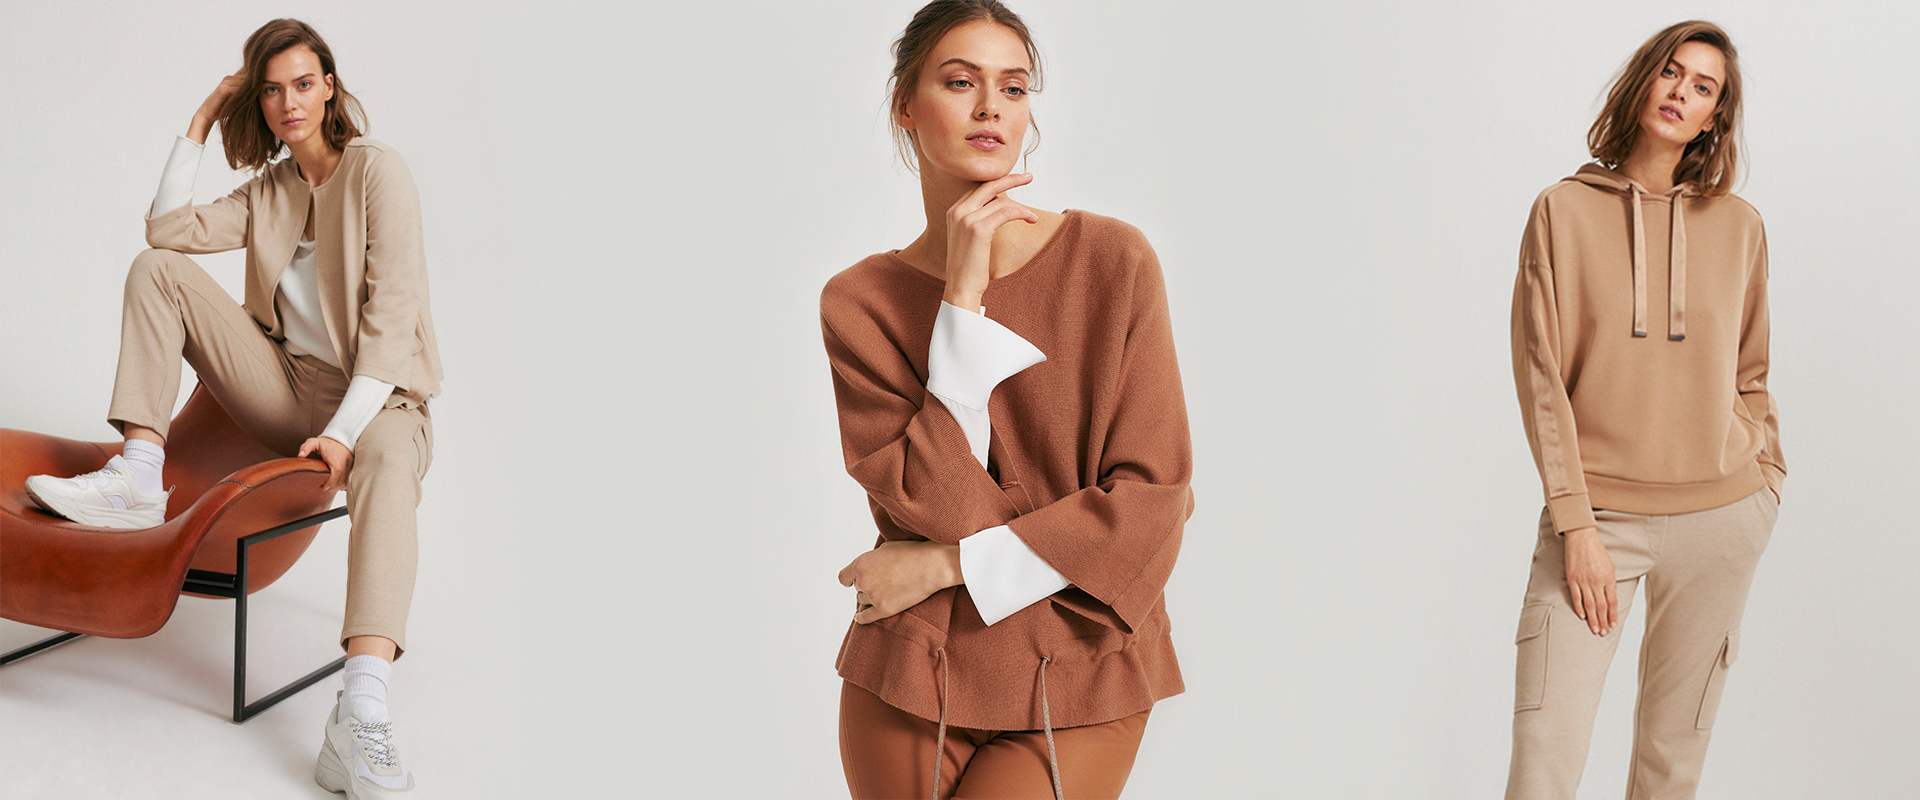 Fashion Clothing Online Shop For Women Comma